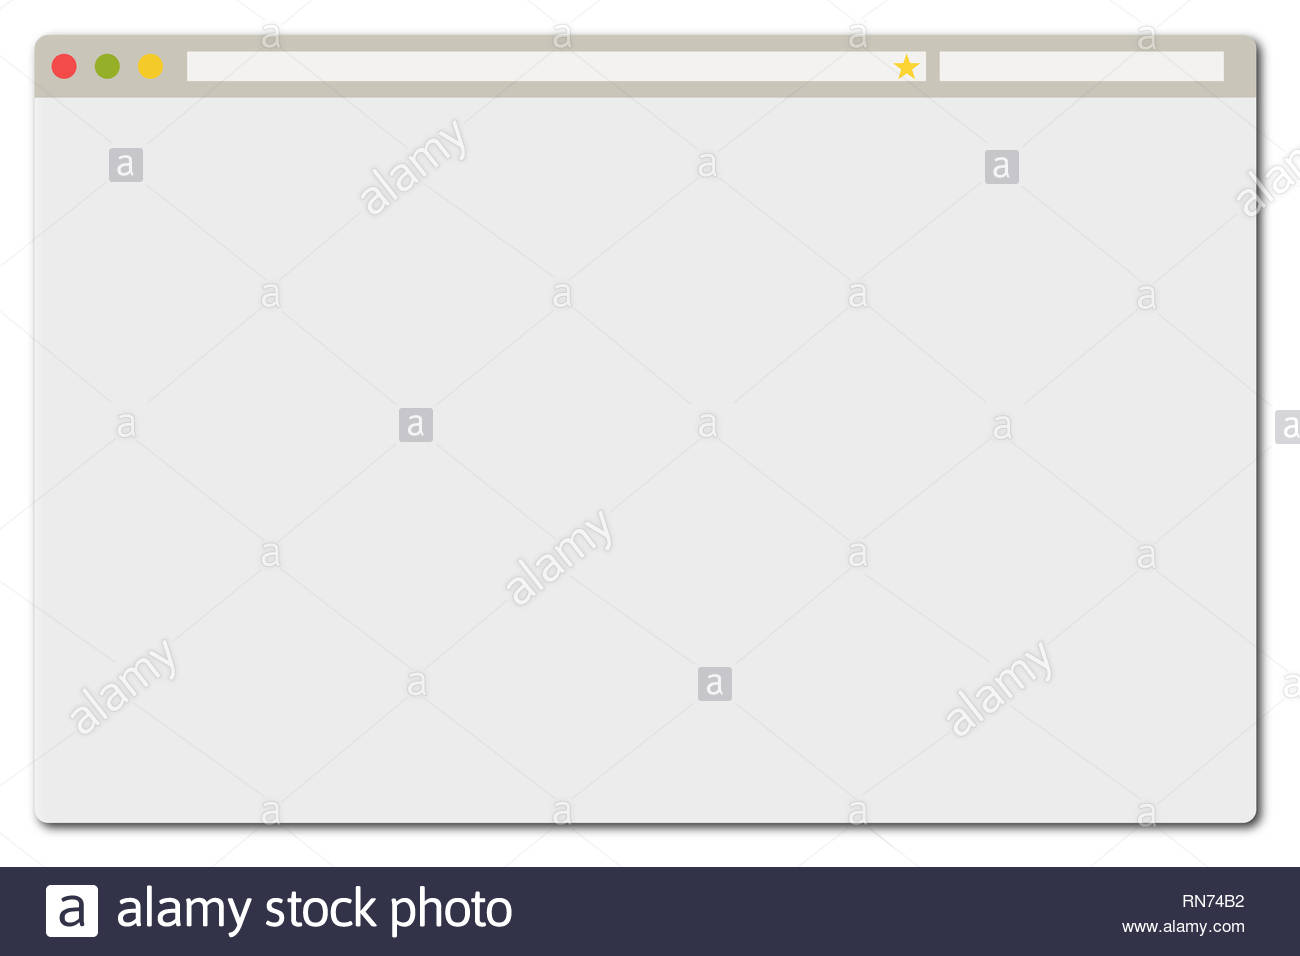 Simple Web Browser Template Stock Photo 236799670 Alamy